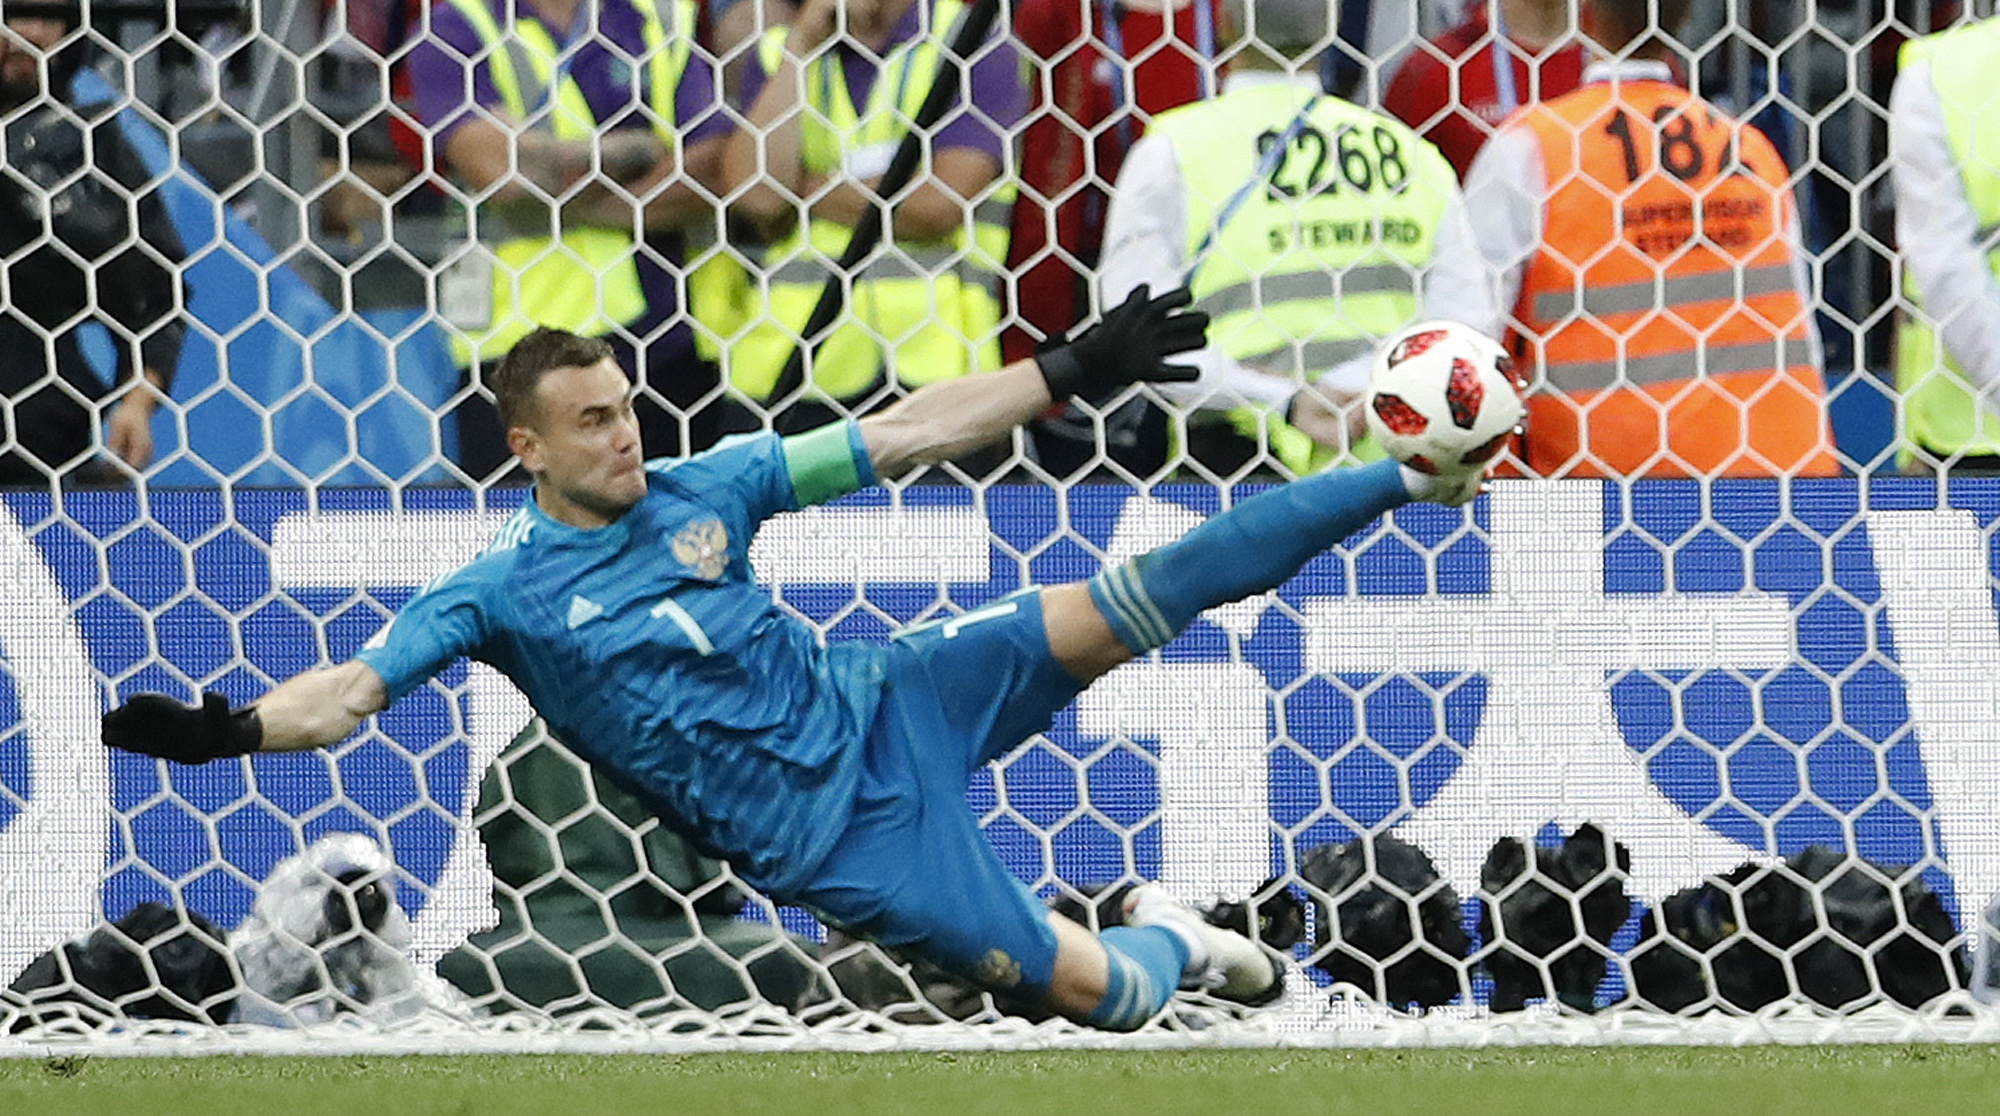 Russia goalkeeper Igor Akinfeev saves a penalty against Spain at the 2018 World Cup